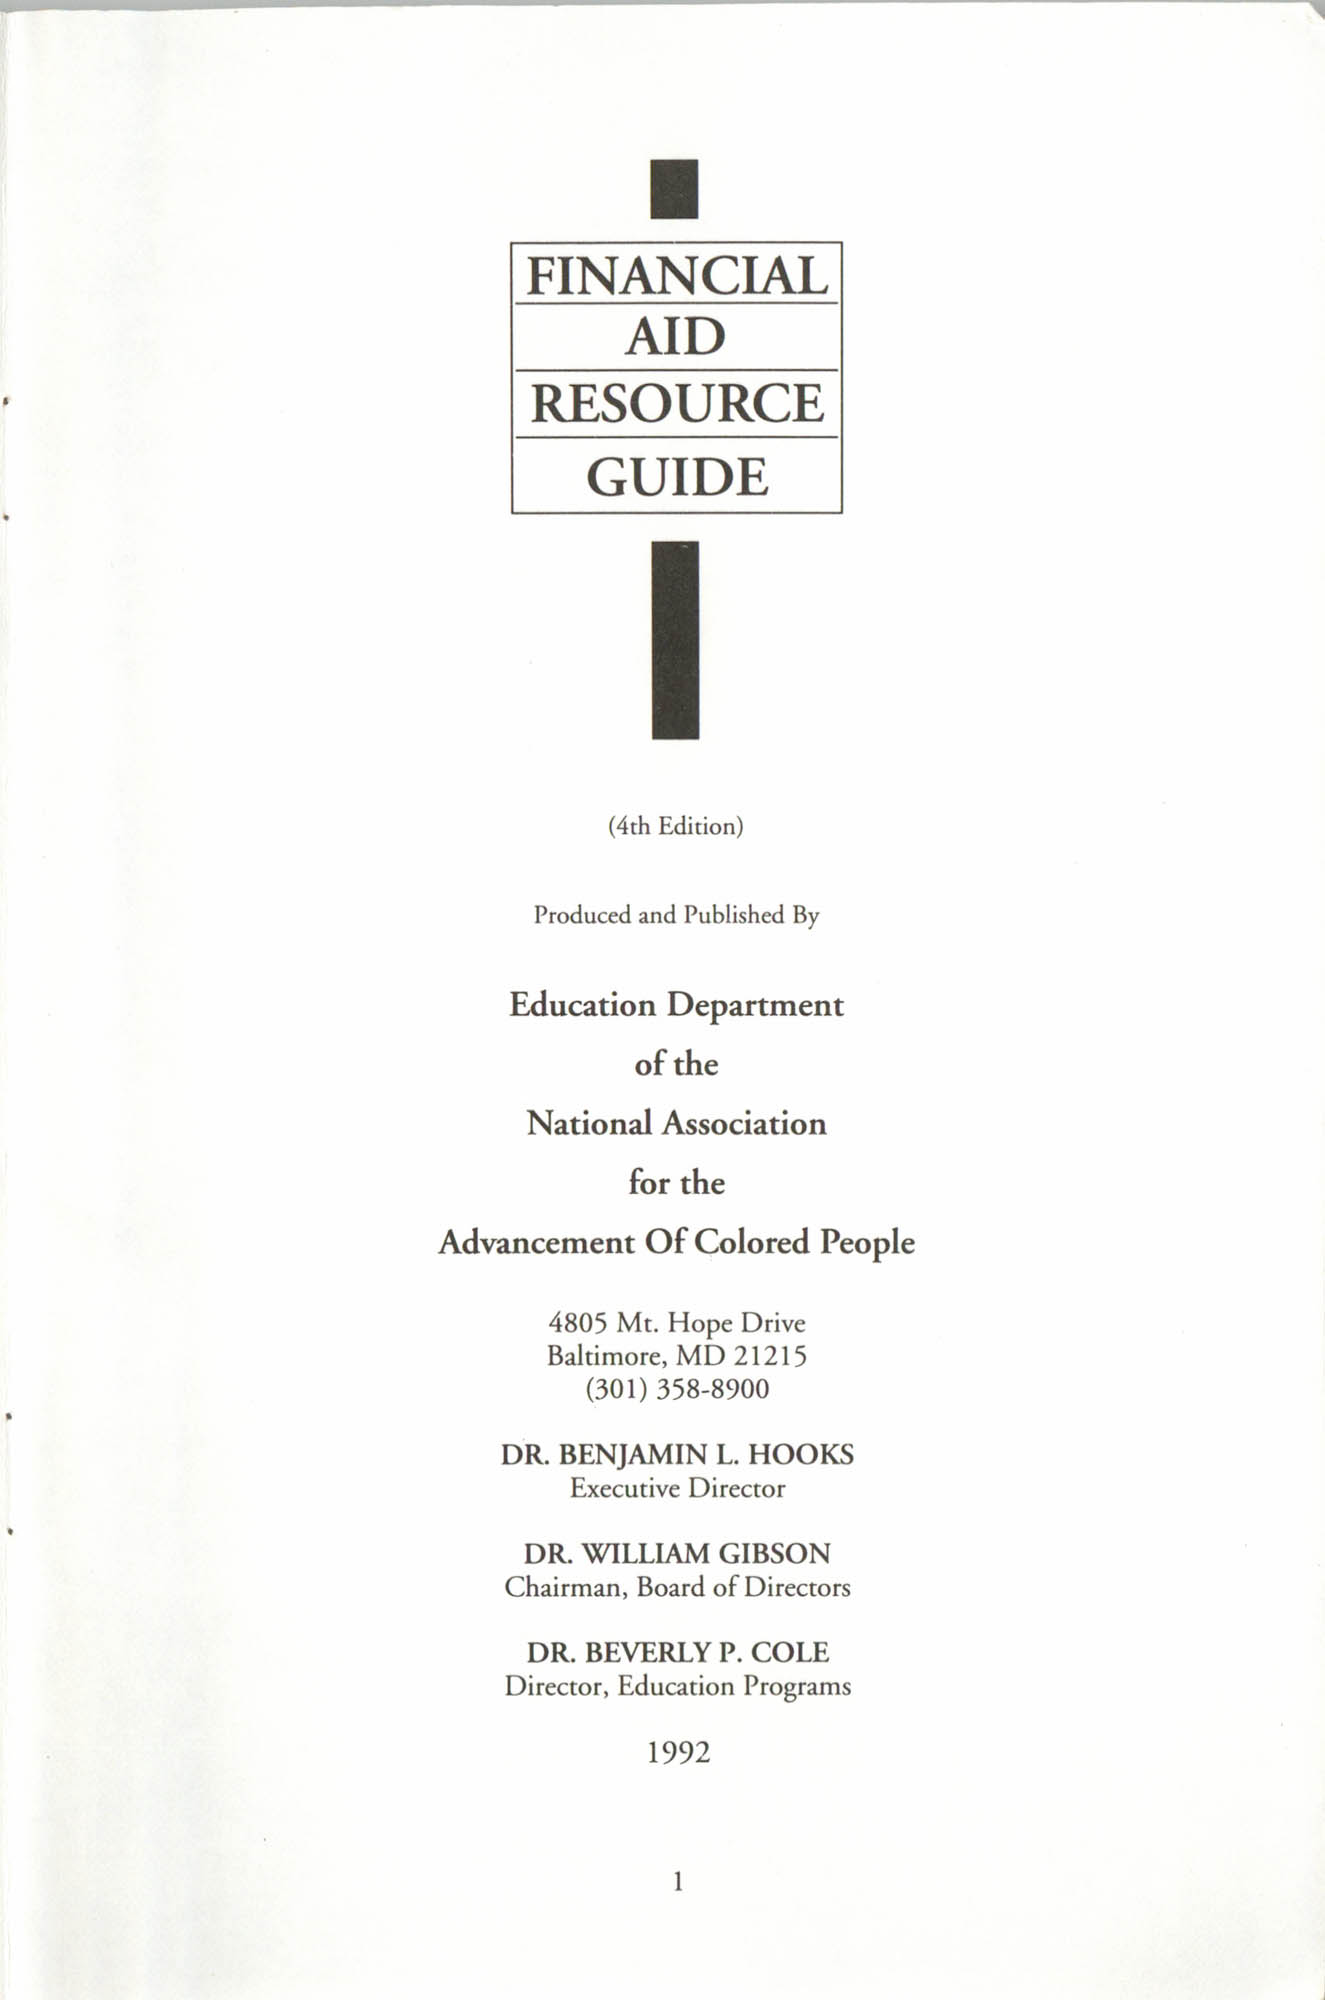 Financial Aid Resource Guide, Education Department, NAACP, Page 1